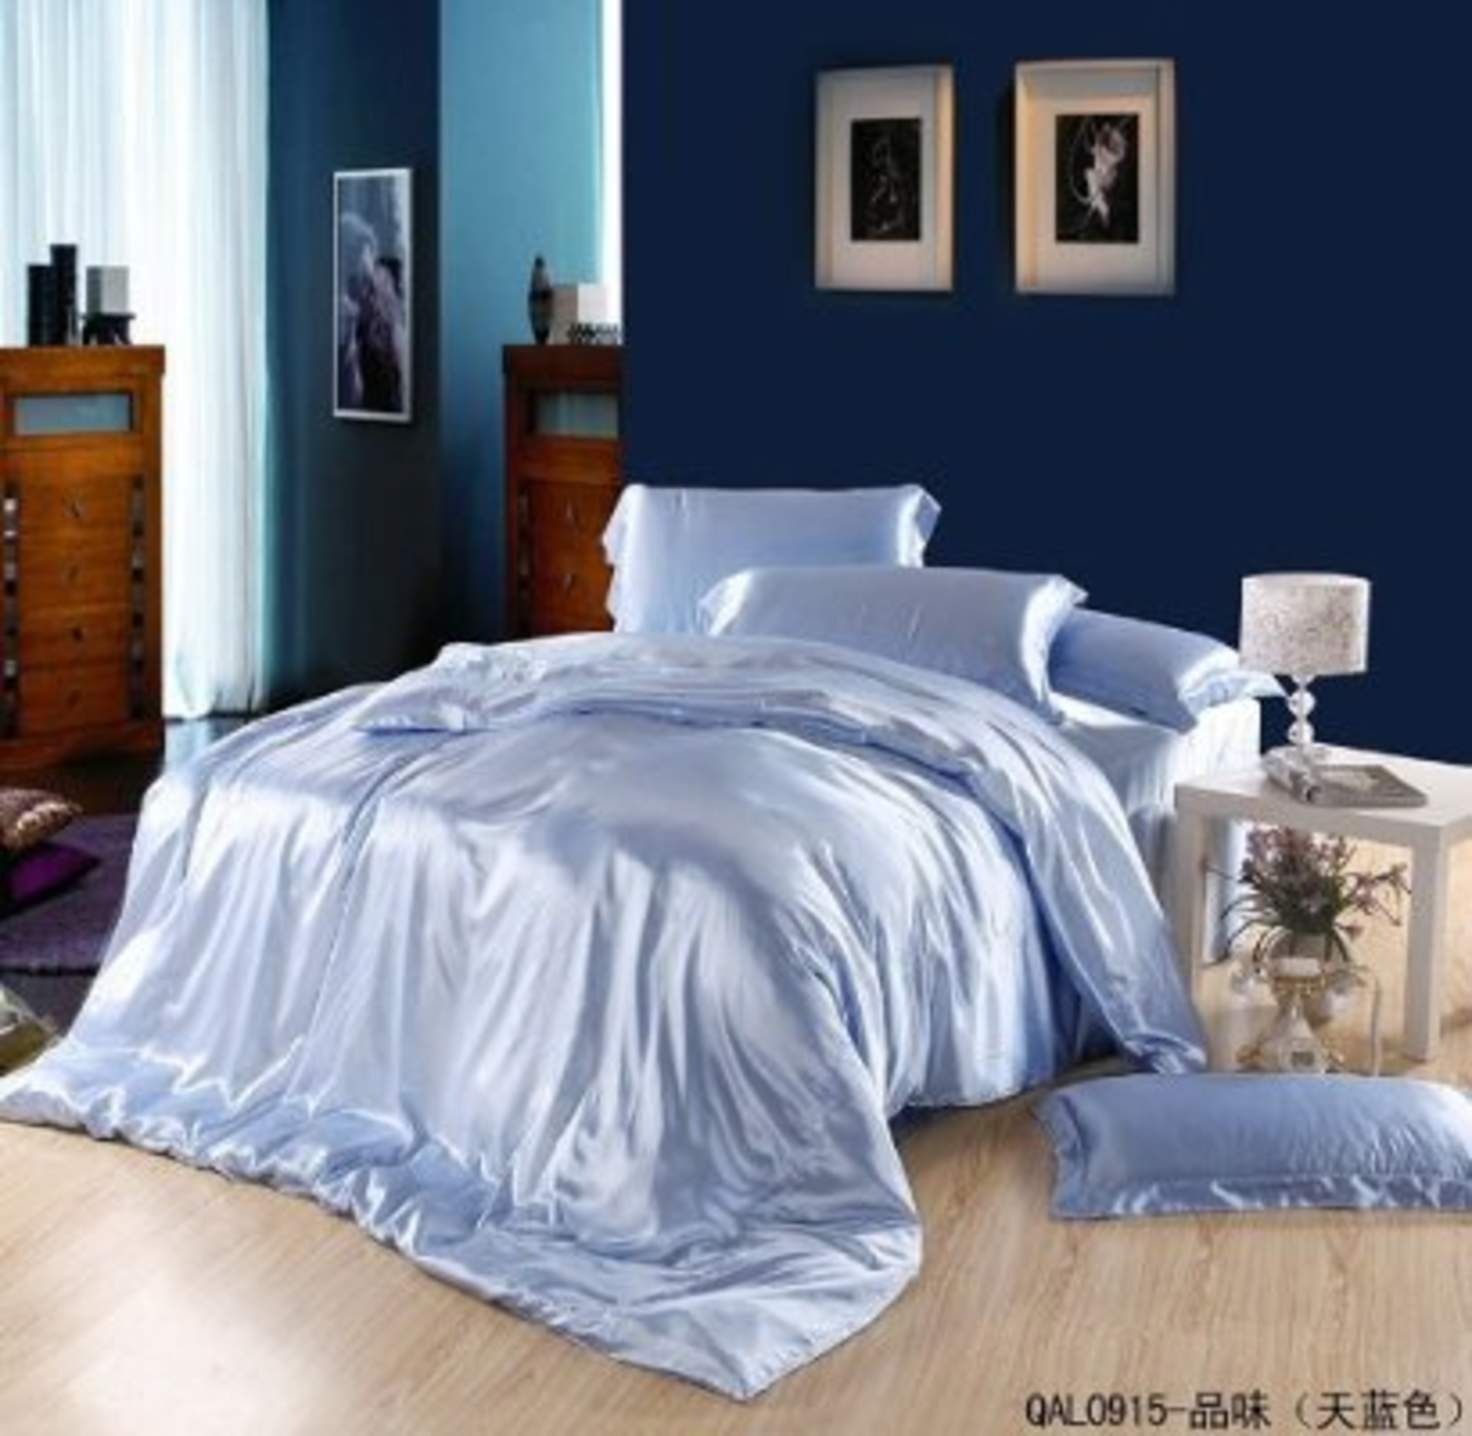 Great Taste Sky Blue Duvet Cover Set Silk Bedding Luxury Bedding Queen Size Fitted Bed Sheets Blue Duvet Satin Bedding